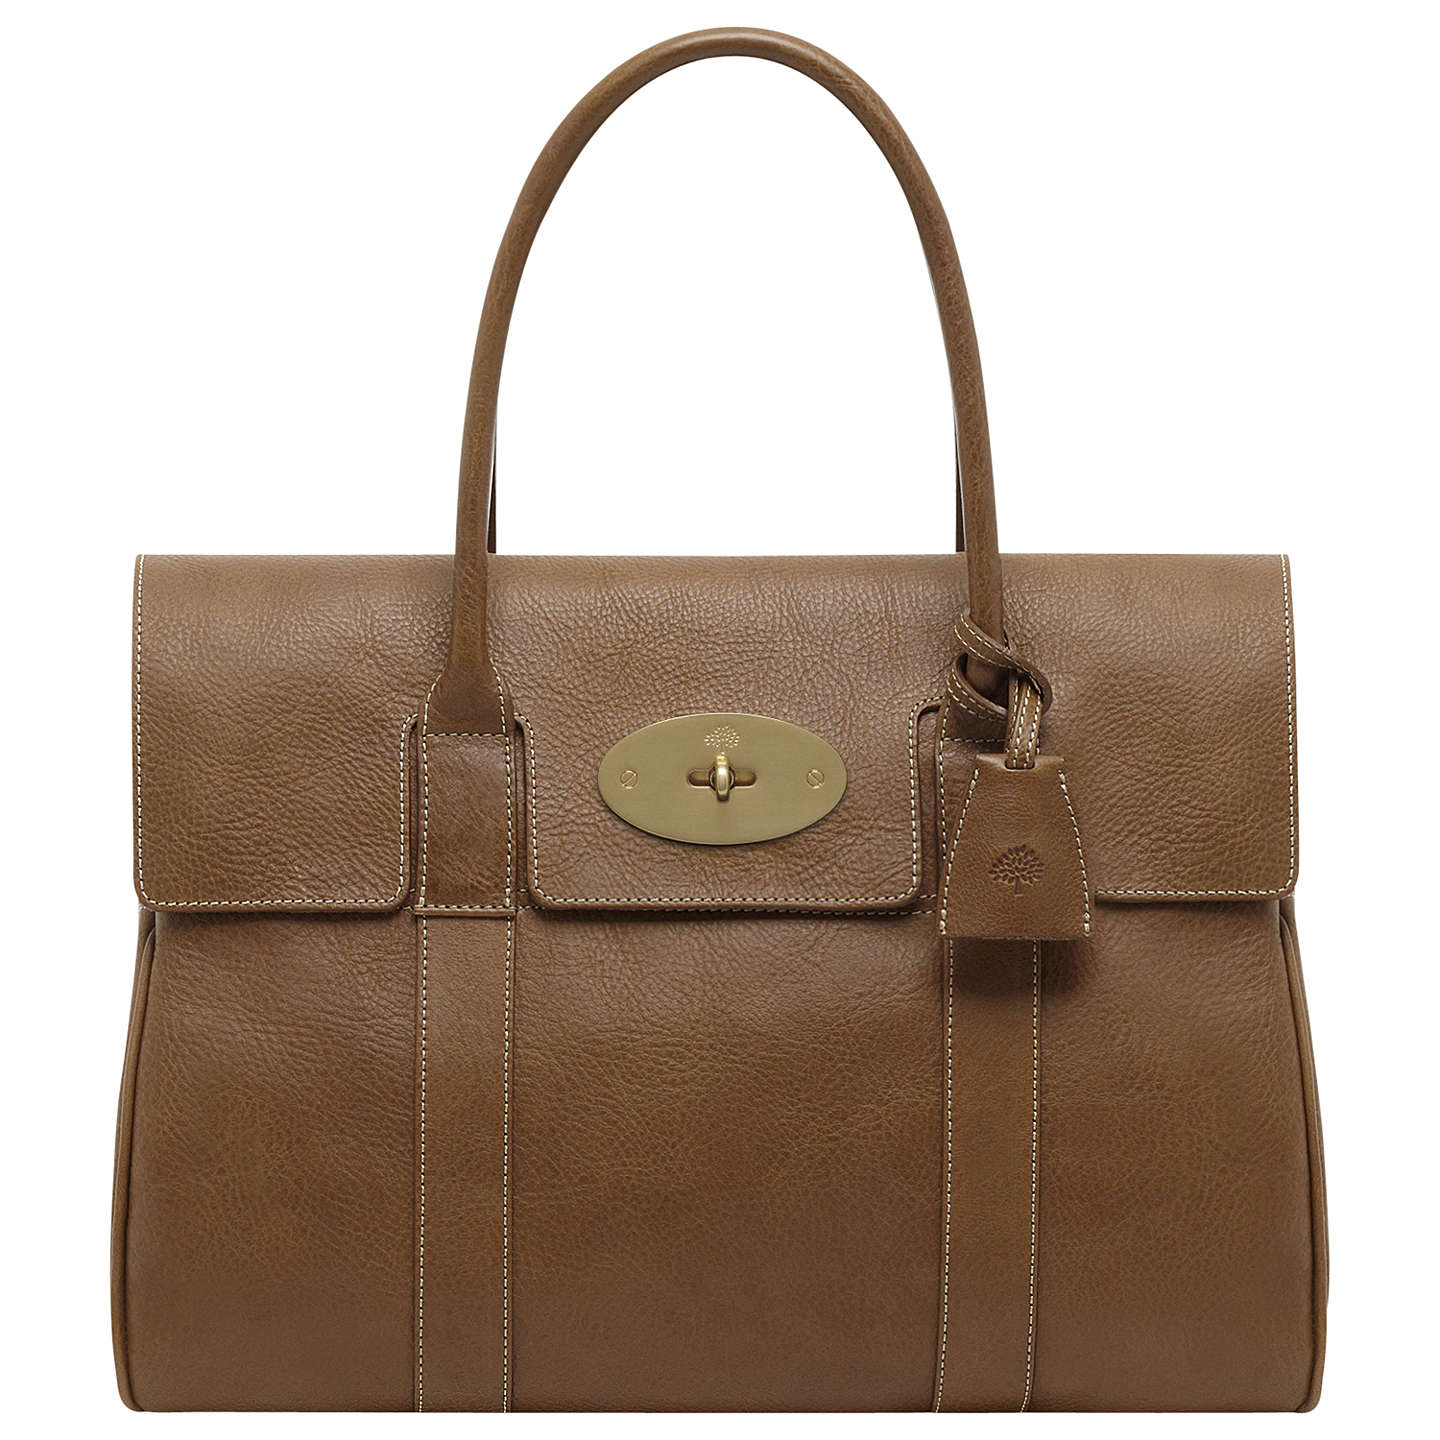 Mulberry bayswater natural veg tanned leather grab bag for The bayswater